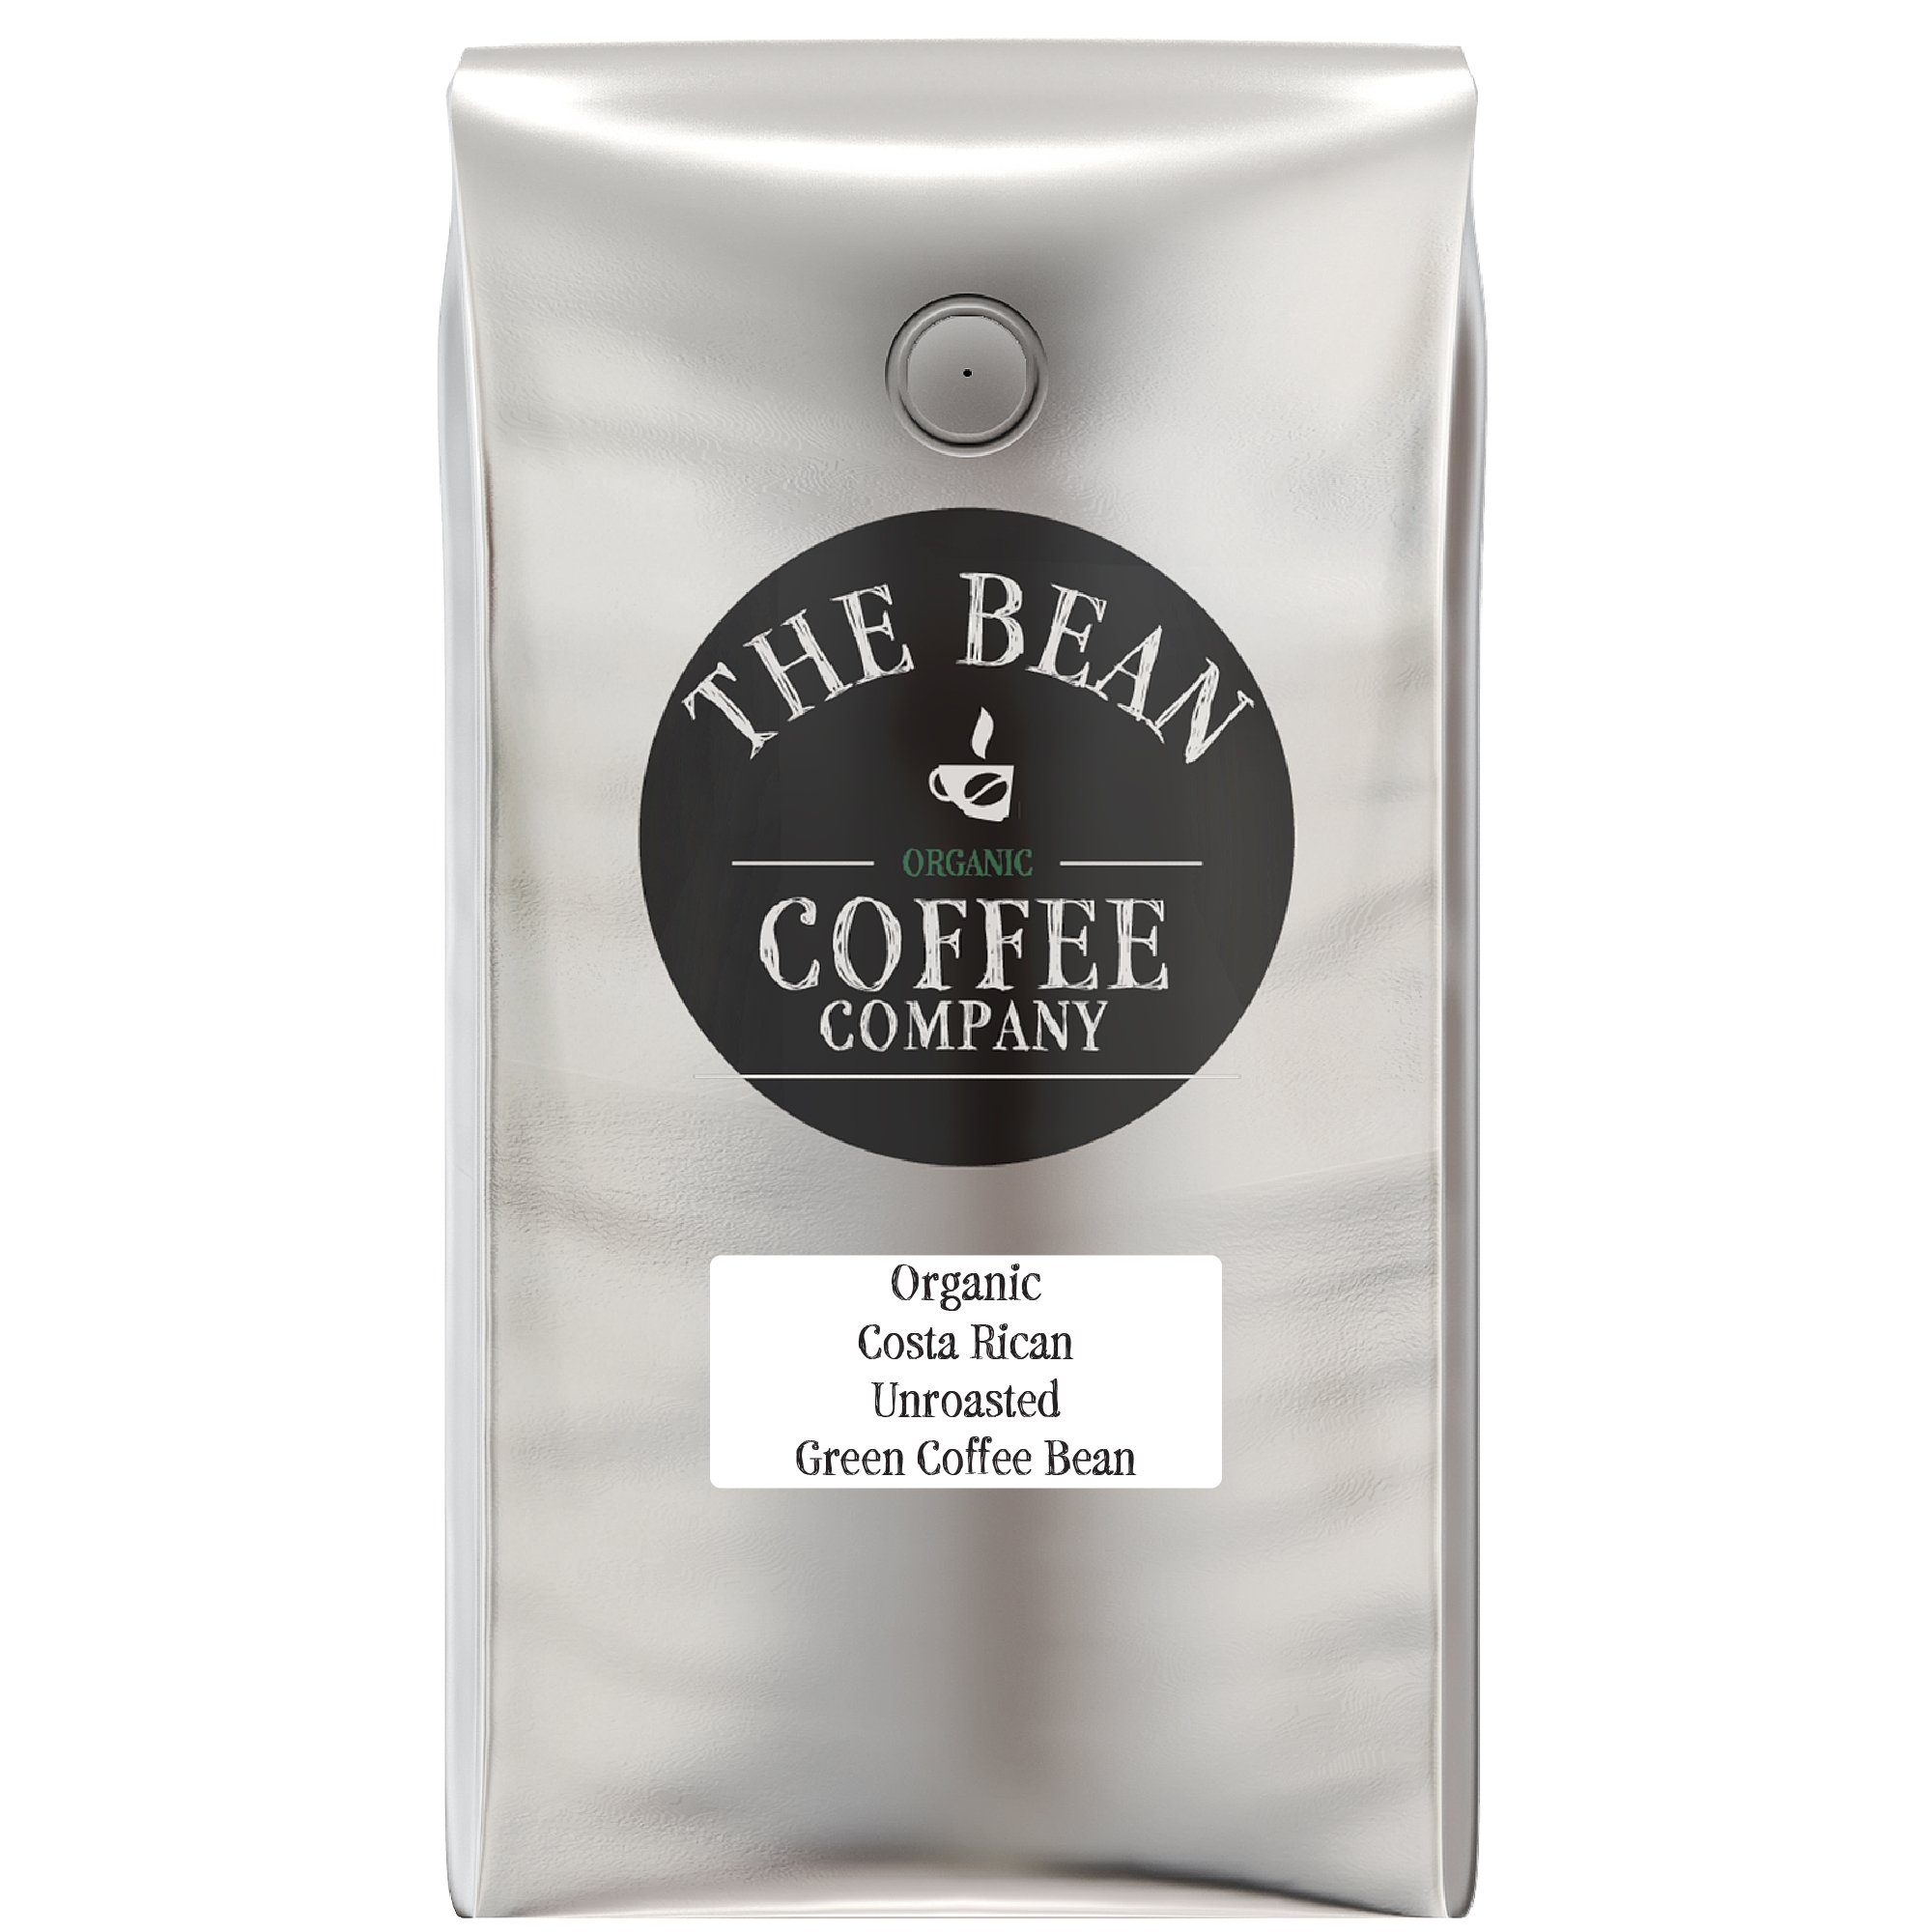 The Bean Coffee Company Organic Unroasted Green Coffee Beans, Costa Rican, 5-Pound Bag